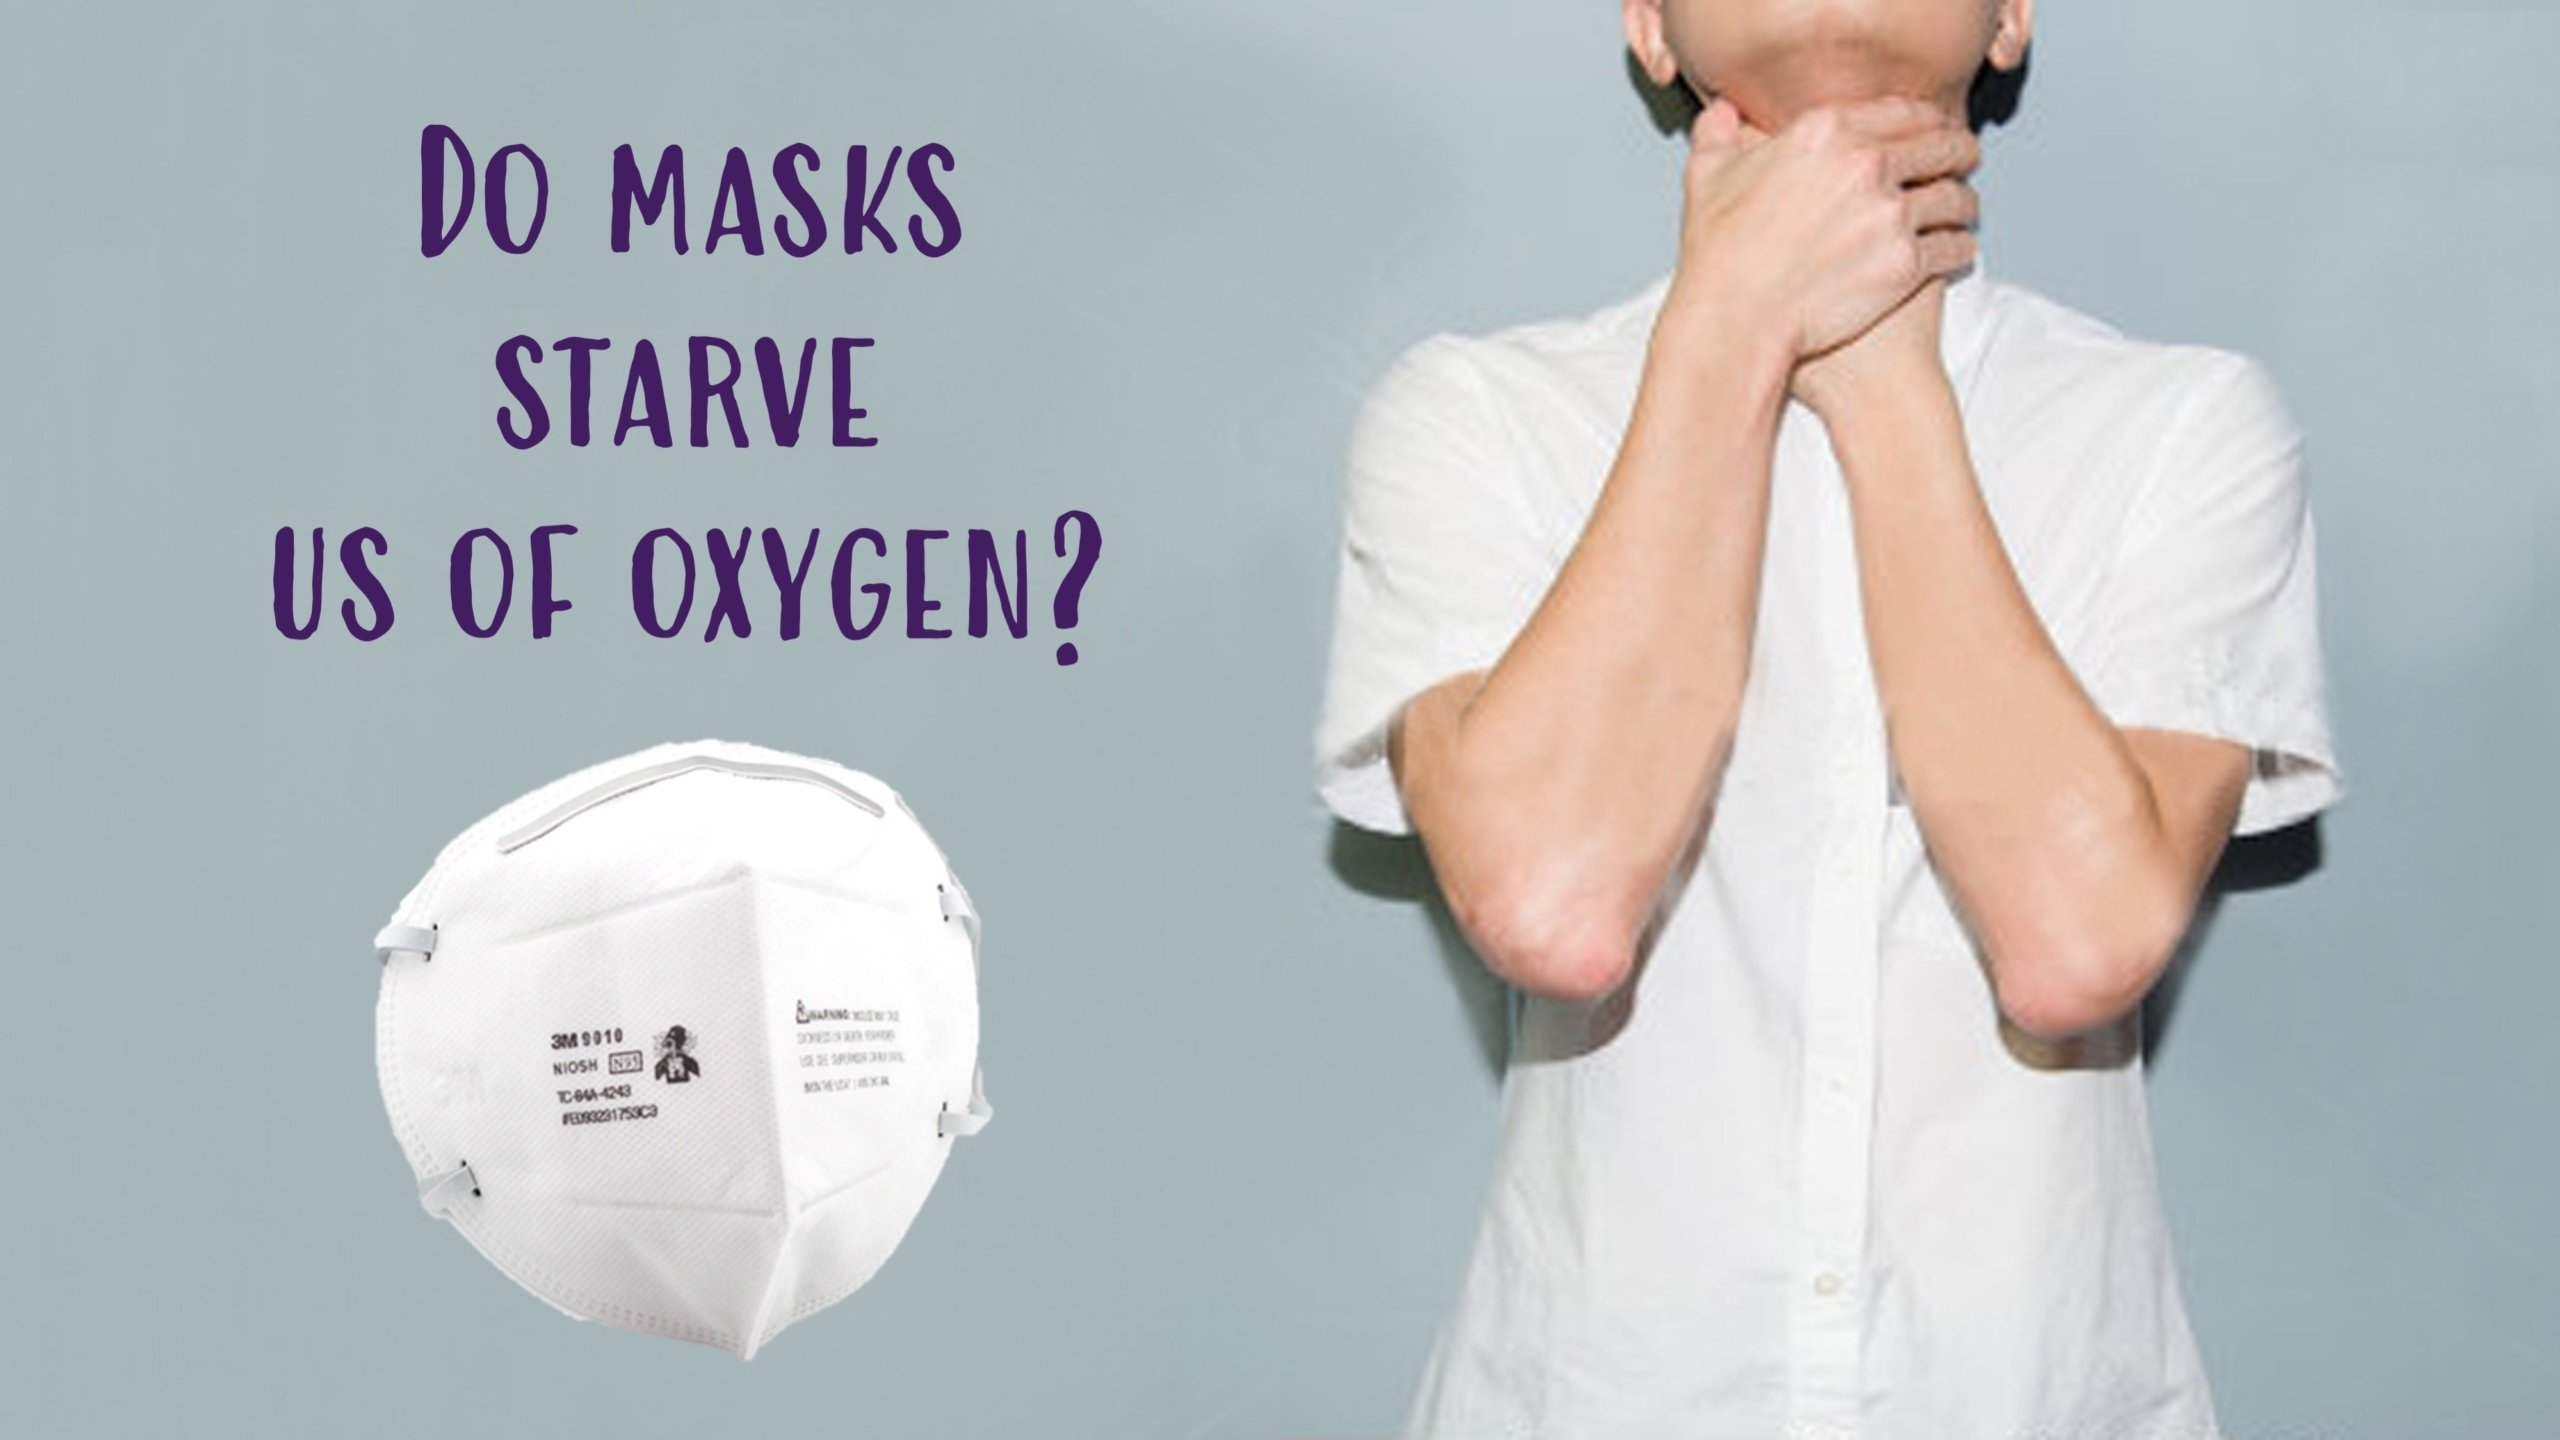 Do N95 Masks limit us breathing of Oxygen Cover